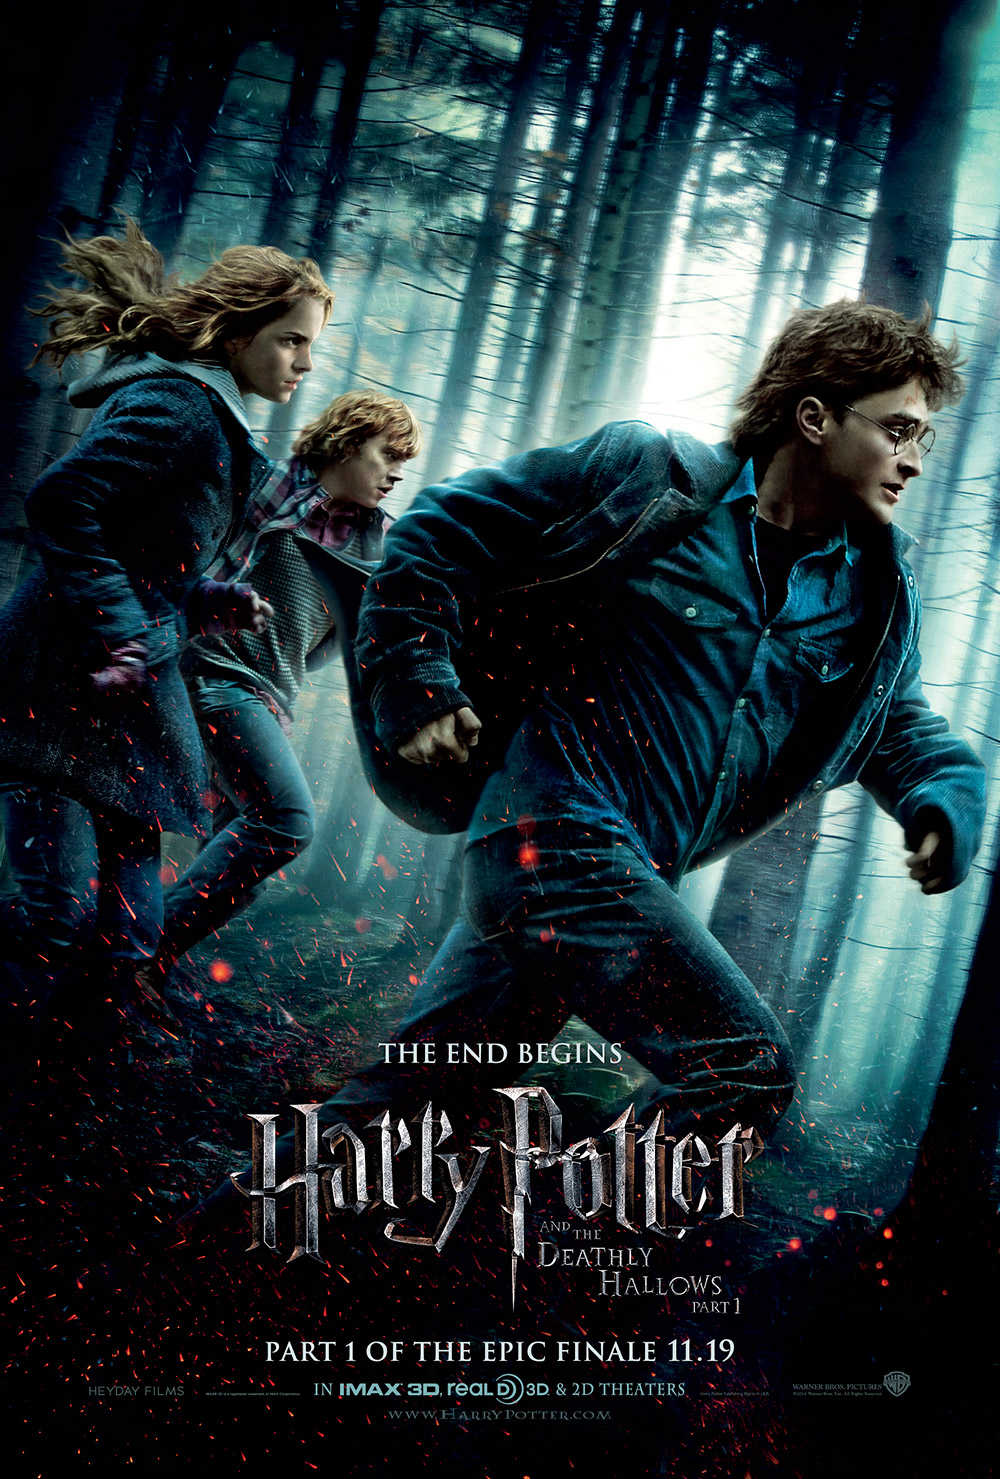 You are currently viewing Notes On A Film: Harry Potter And The Deathly Hallows Part 1